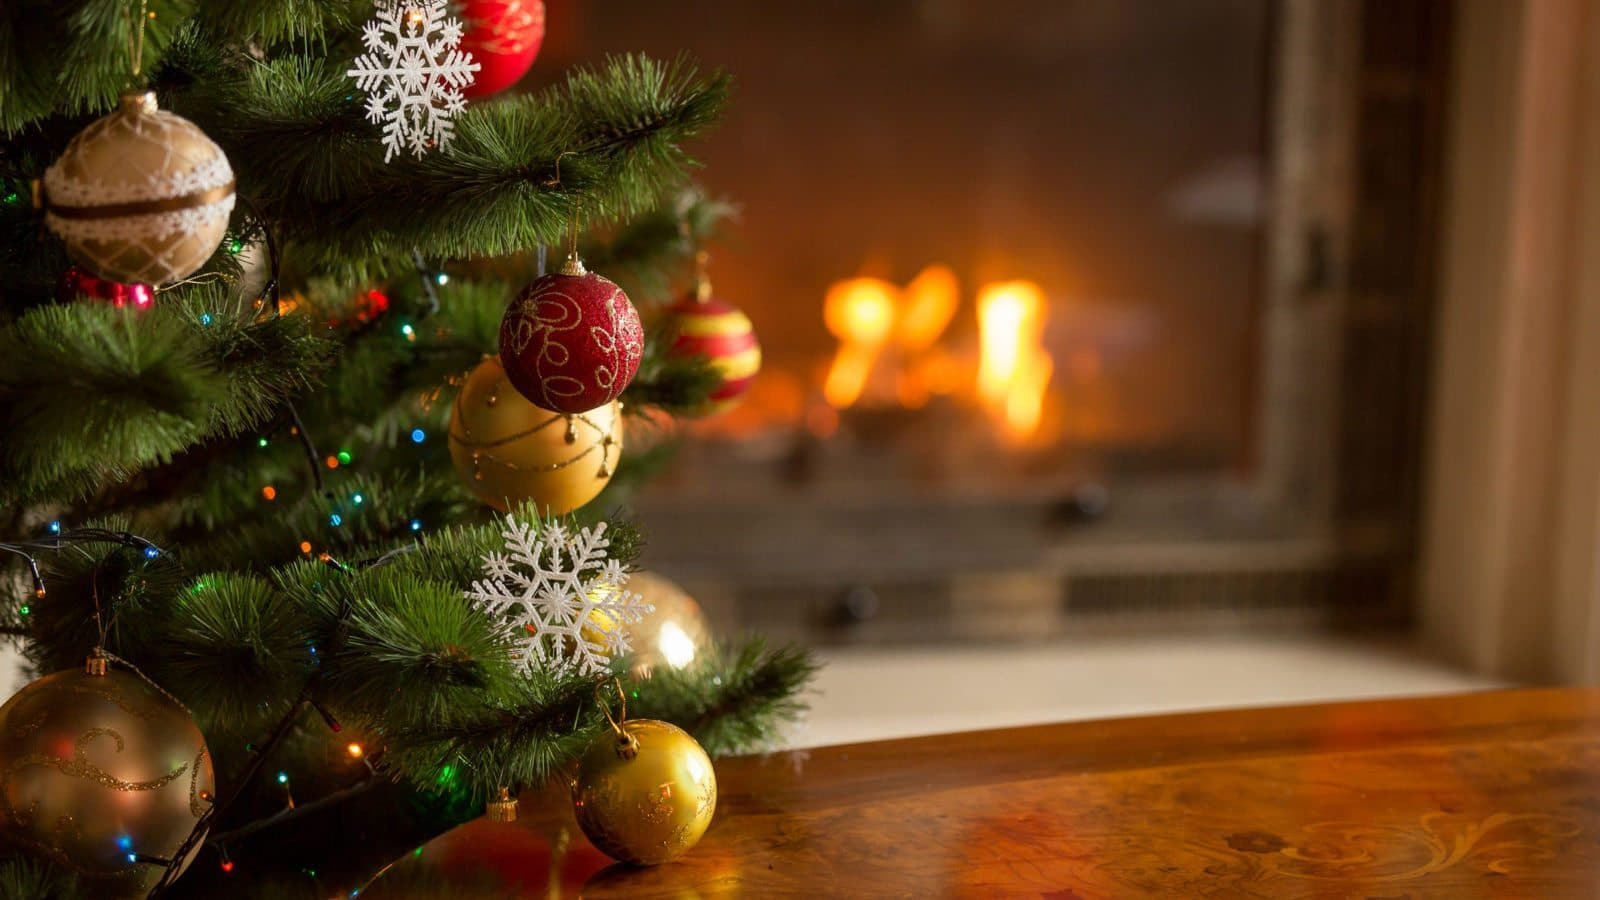 Christmas Tree Background.Your Guide To Christmas Tree Safety Thompson Law